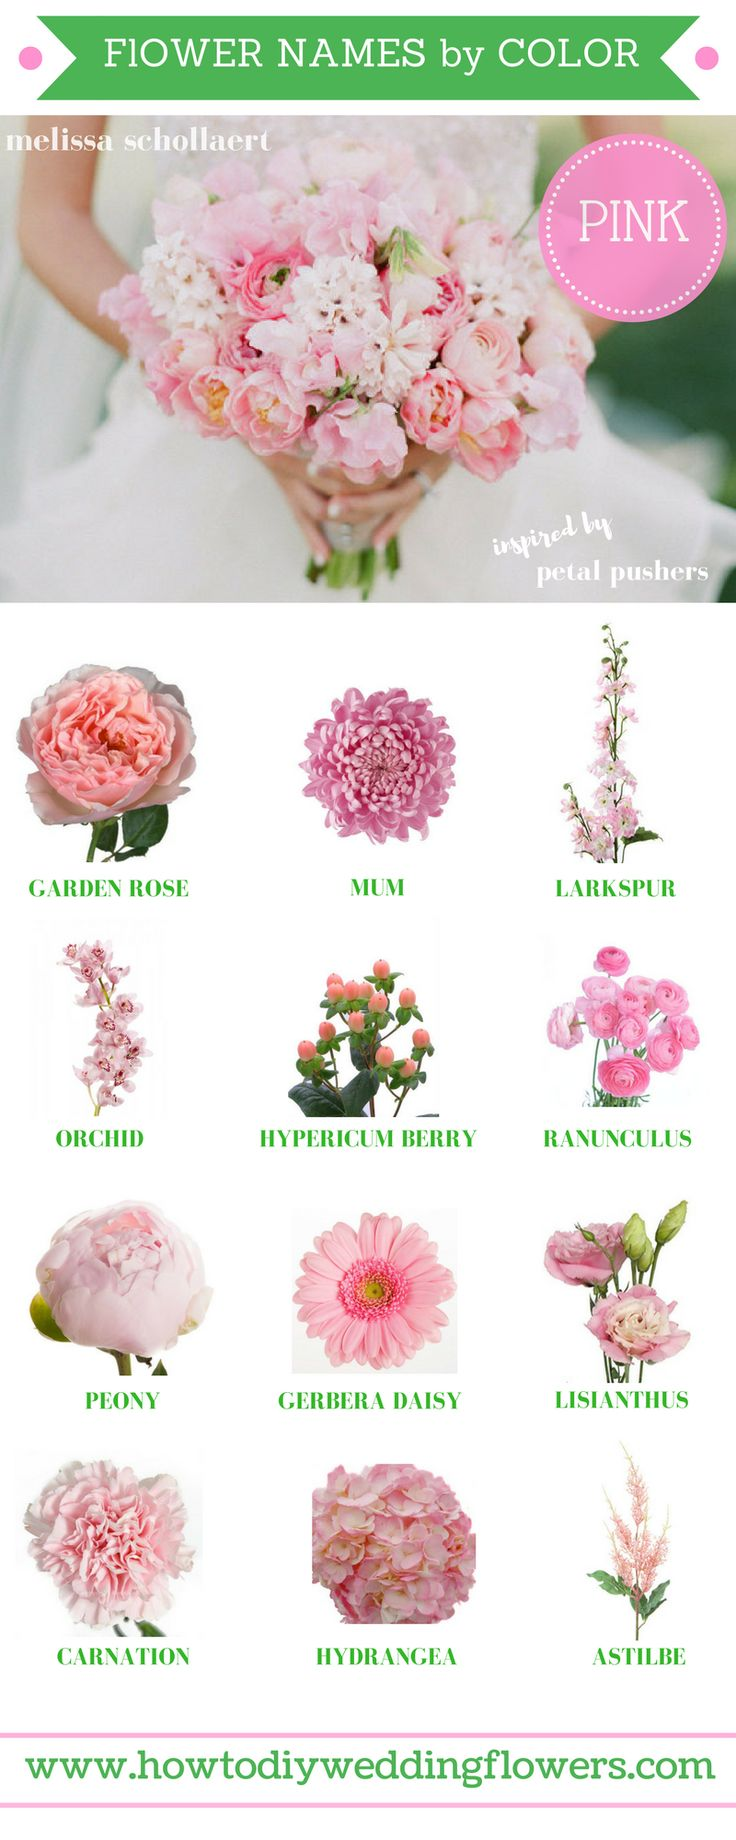 diy wedding flowers ideas inspiration - Common Flowers In Arrangements